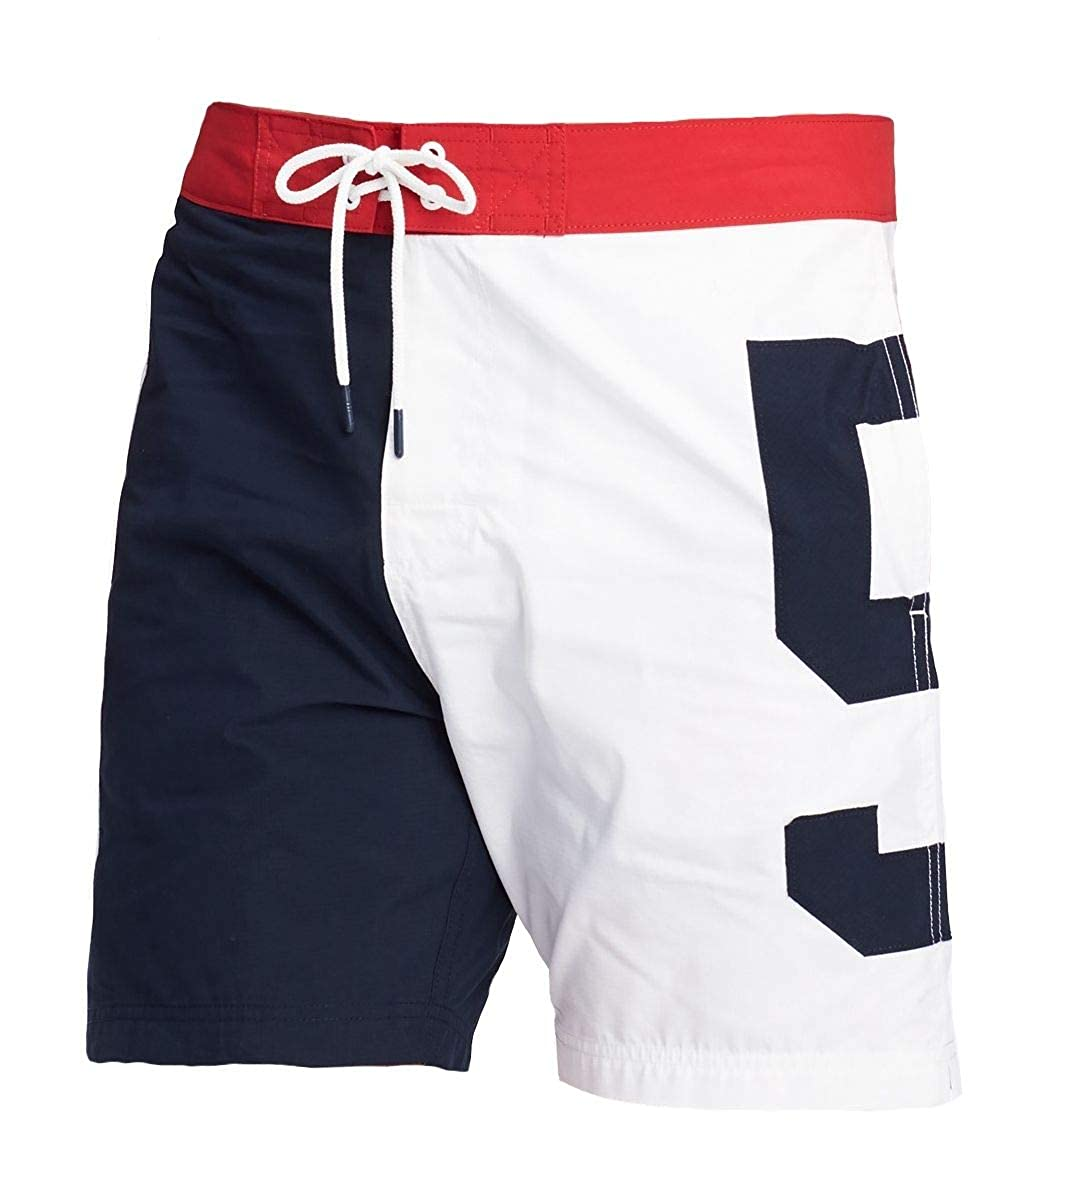 f810ab17408a8 Tommy Hilfiger Men's Pier 85 Board Shorts/Swim Trunks | Amazon.com